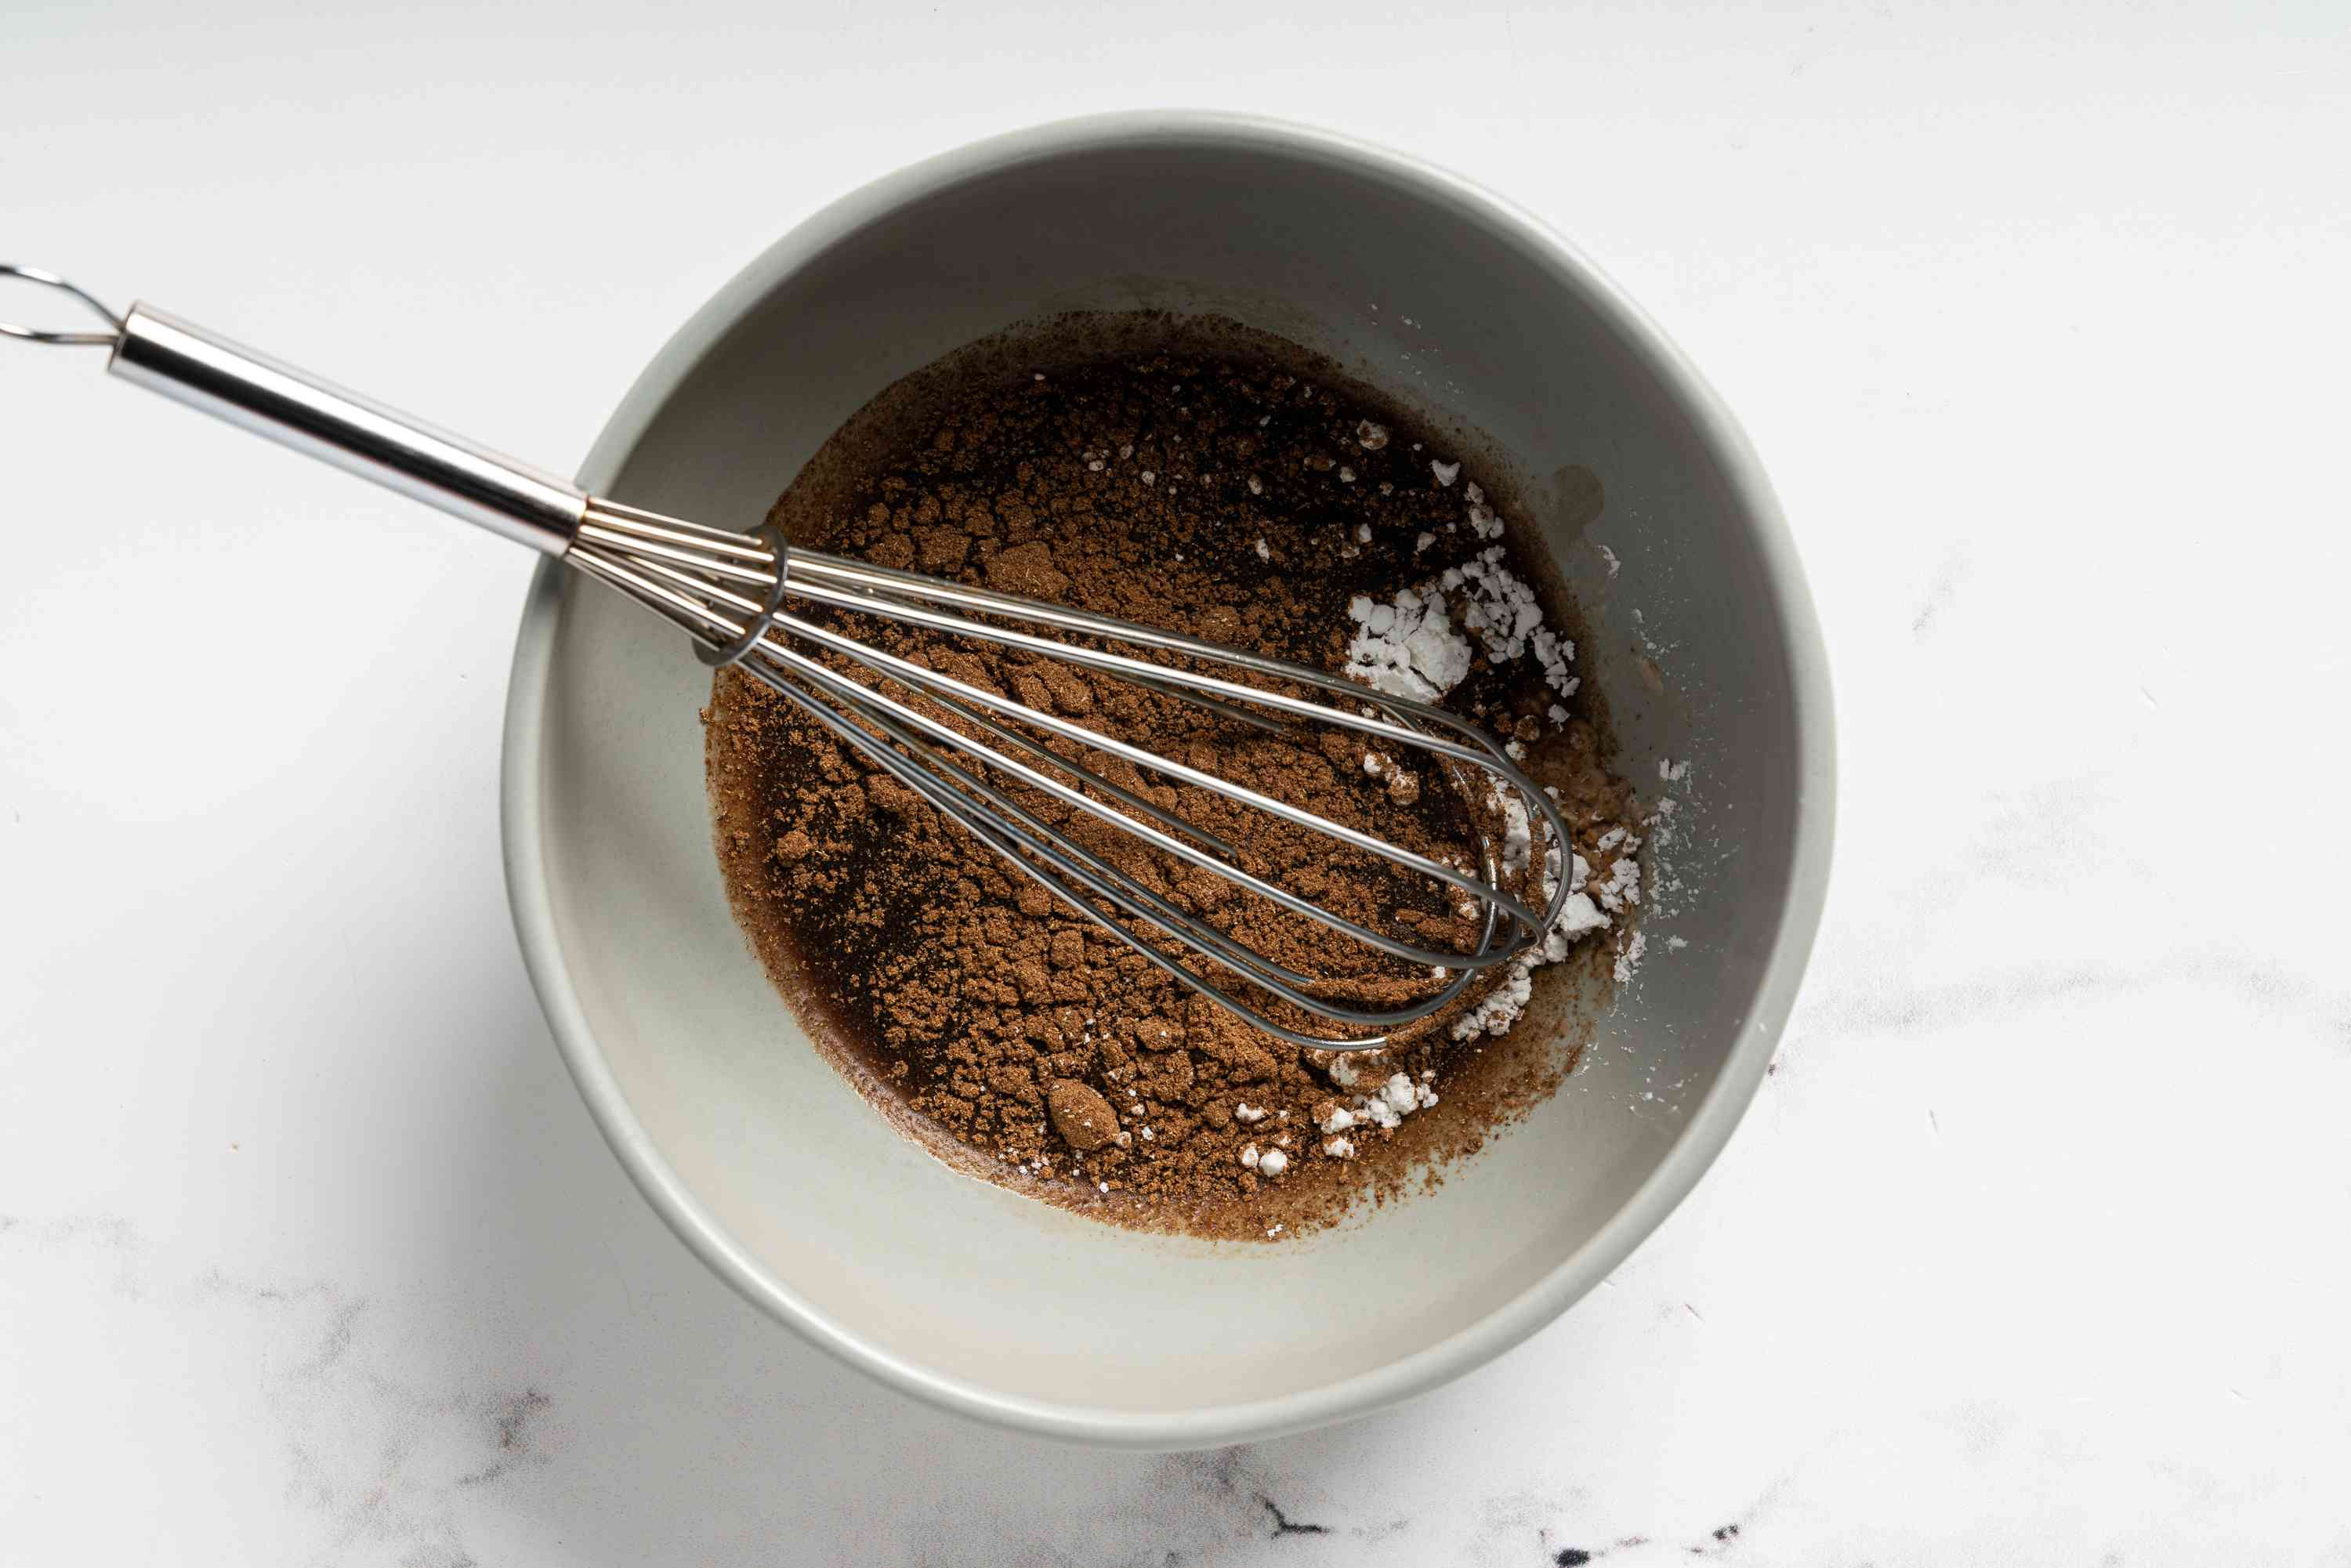 combine soy sauce, sherry, five-spice powder, and cornstarch in a bowl